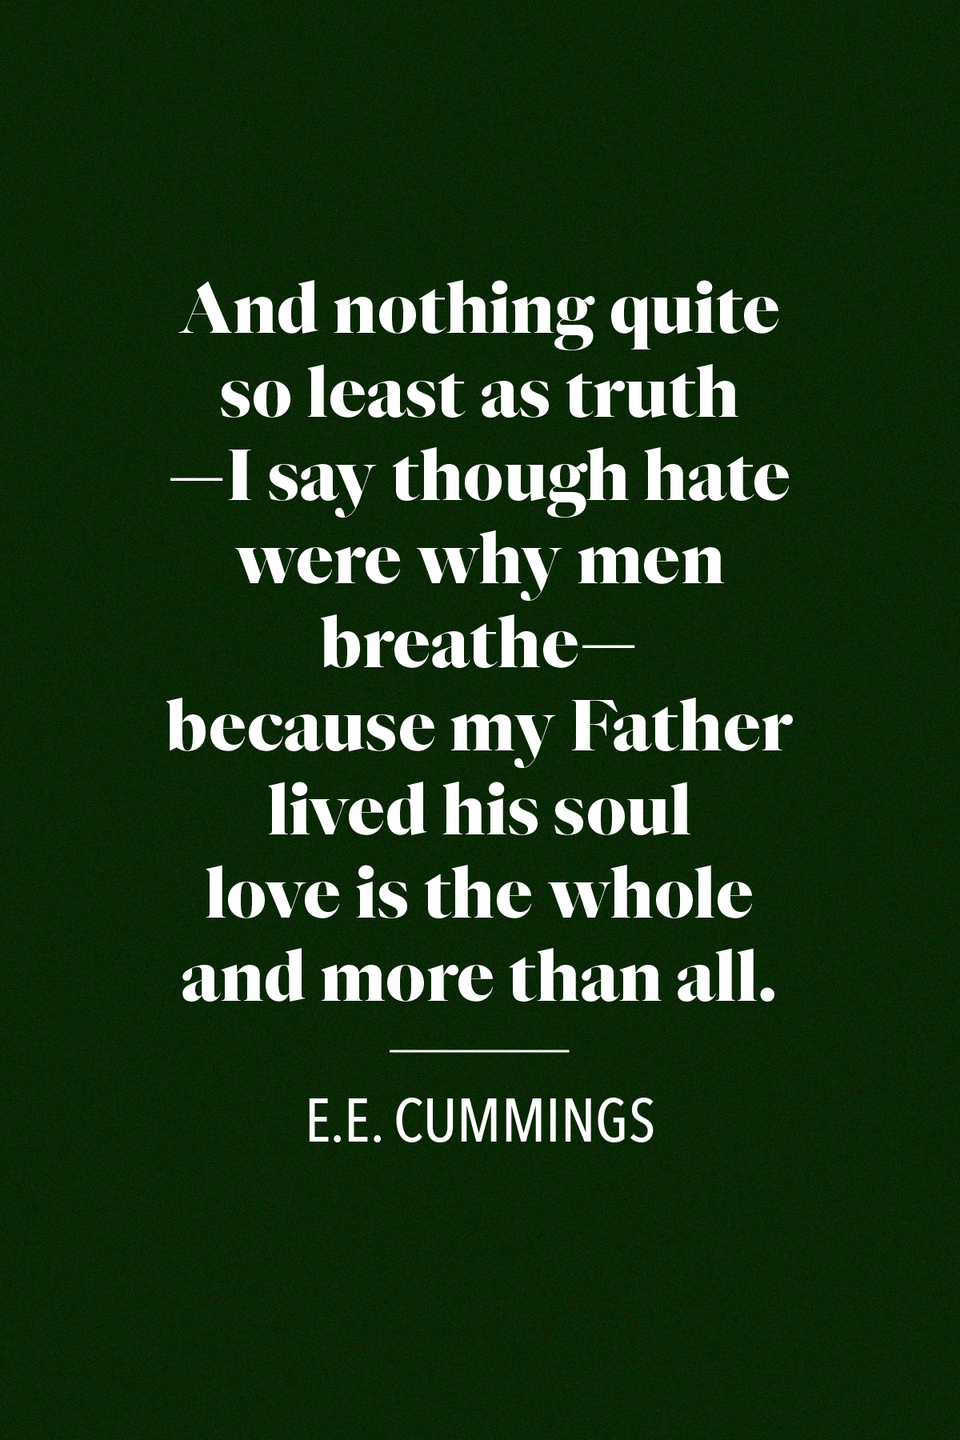 "<p>E.E. Cummings, an American poet, playwright, and painter wrote in his poem ""<a href=""https://poets.org/poem/my-father-moved-through-dooms-love"" rel=""nofollow noopener"" target=""_blank"" data-ylk=""slk:My Father Moved Through Dooms of Love"" class=""link rapid-noclick-resp"">My Father Moved Through Dooms of Love</a>,"" ""and nothing quite so least as truth / —i say though hate were why men breathe— / because my Father lived his soul /love is the whole and more than all.""</p>"